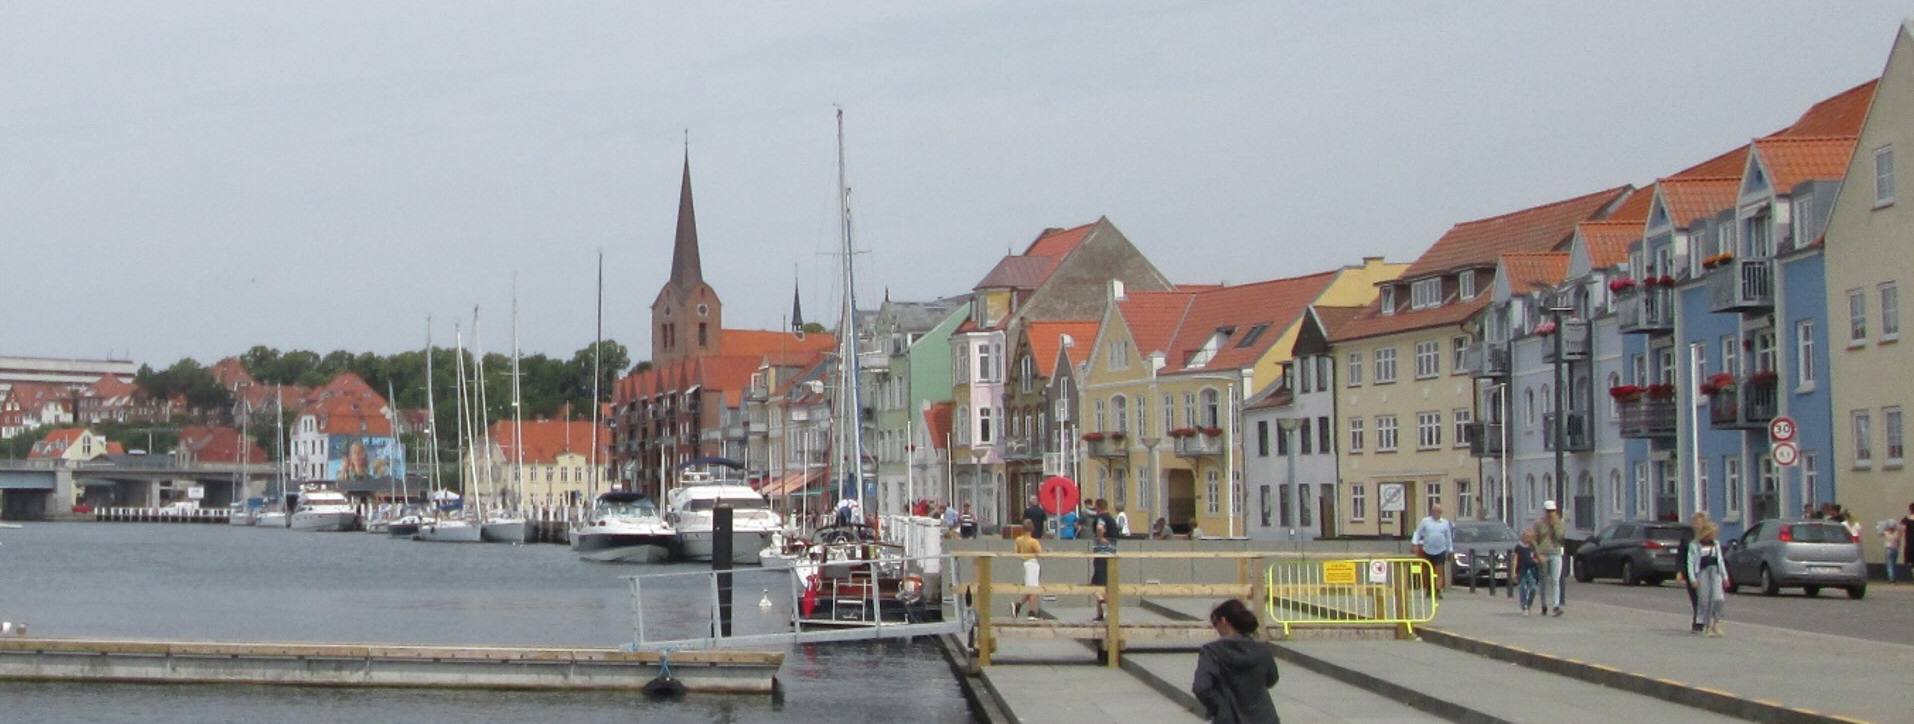 Soenderborg / Sønderborg Region South Denmark / Danmark Cities